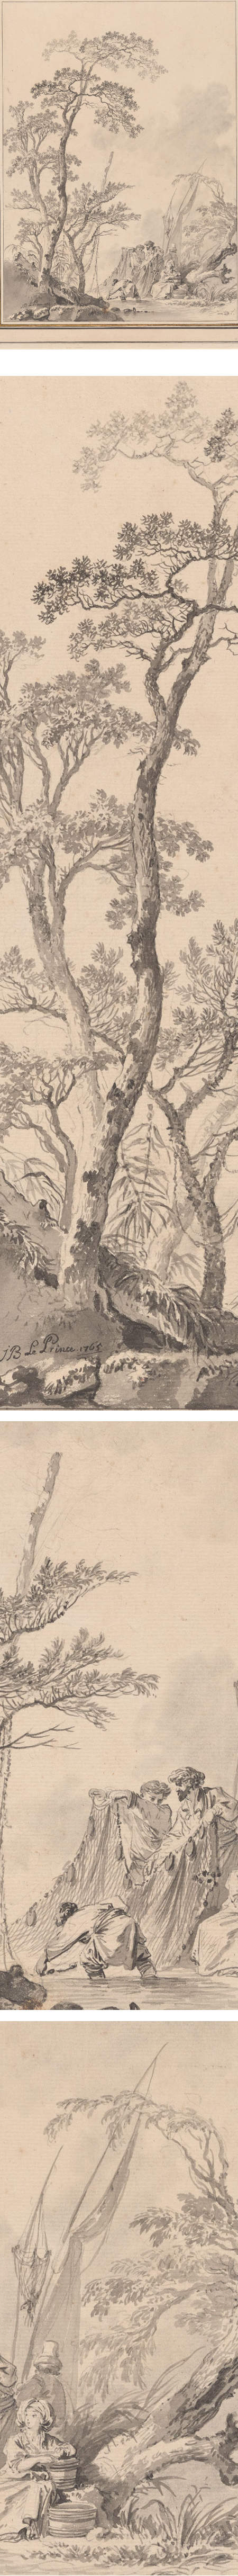 Imaginary Landscape with Fishermen Pulling in Their Nets, Jean-Baptiste Le Prince ink and wash drawing